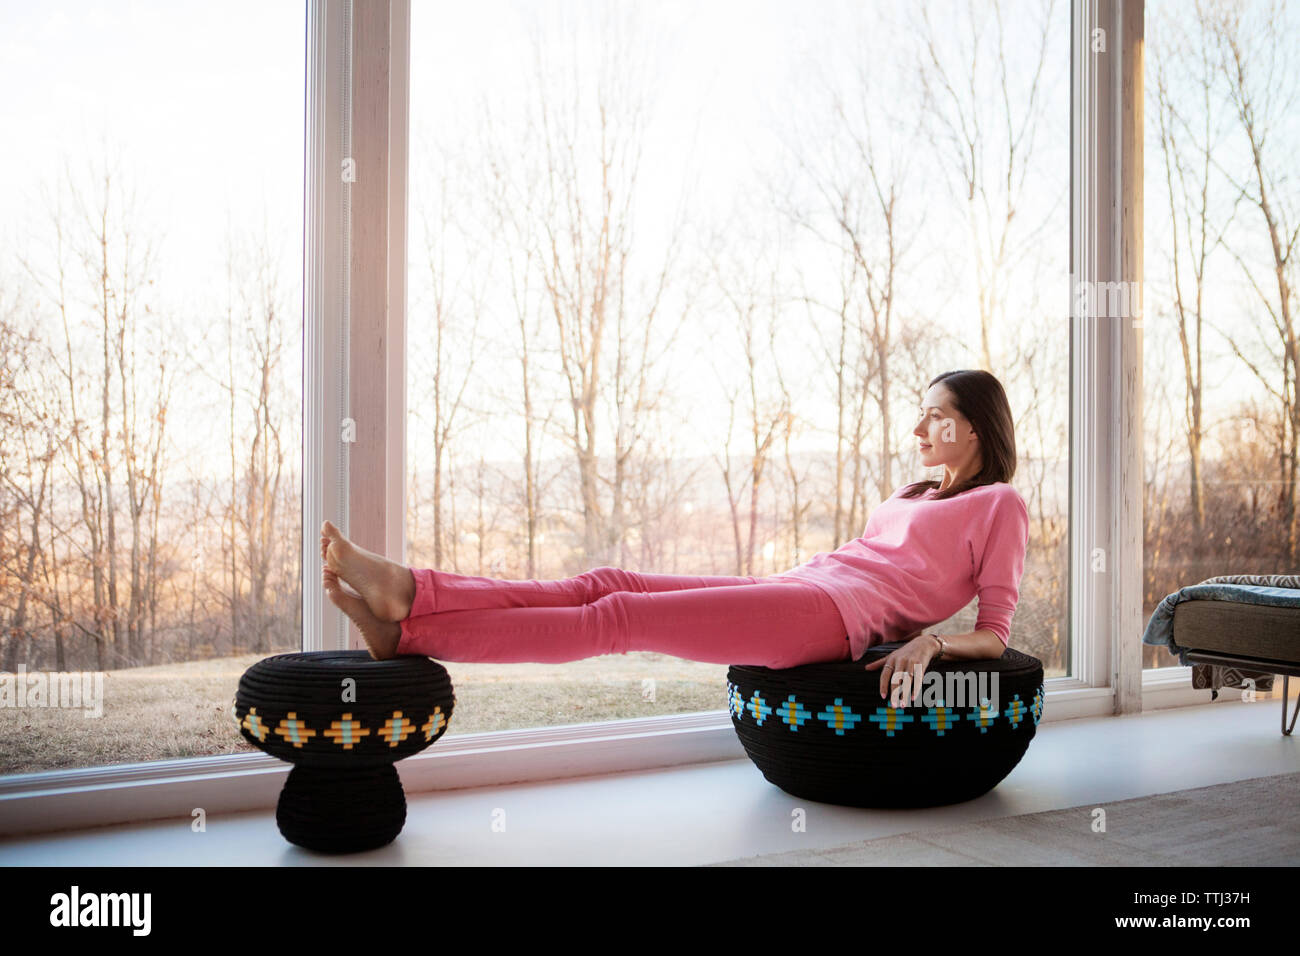 Side view of woman relaxing on ottomans by window at home Stock Photo